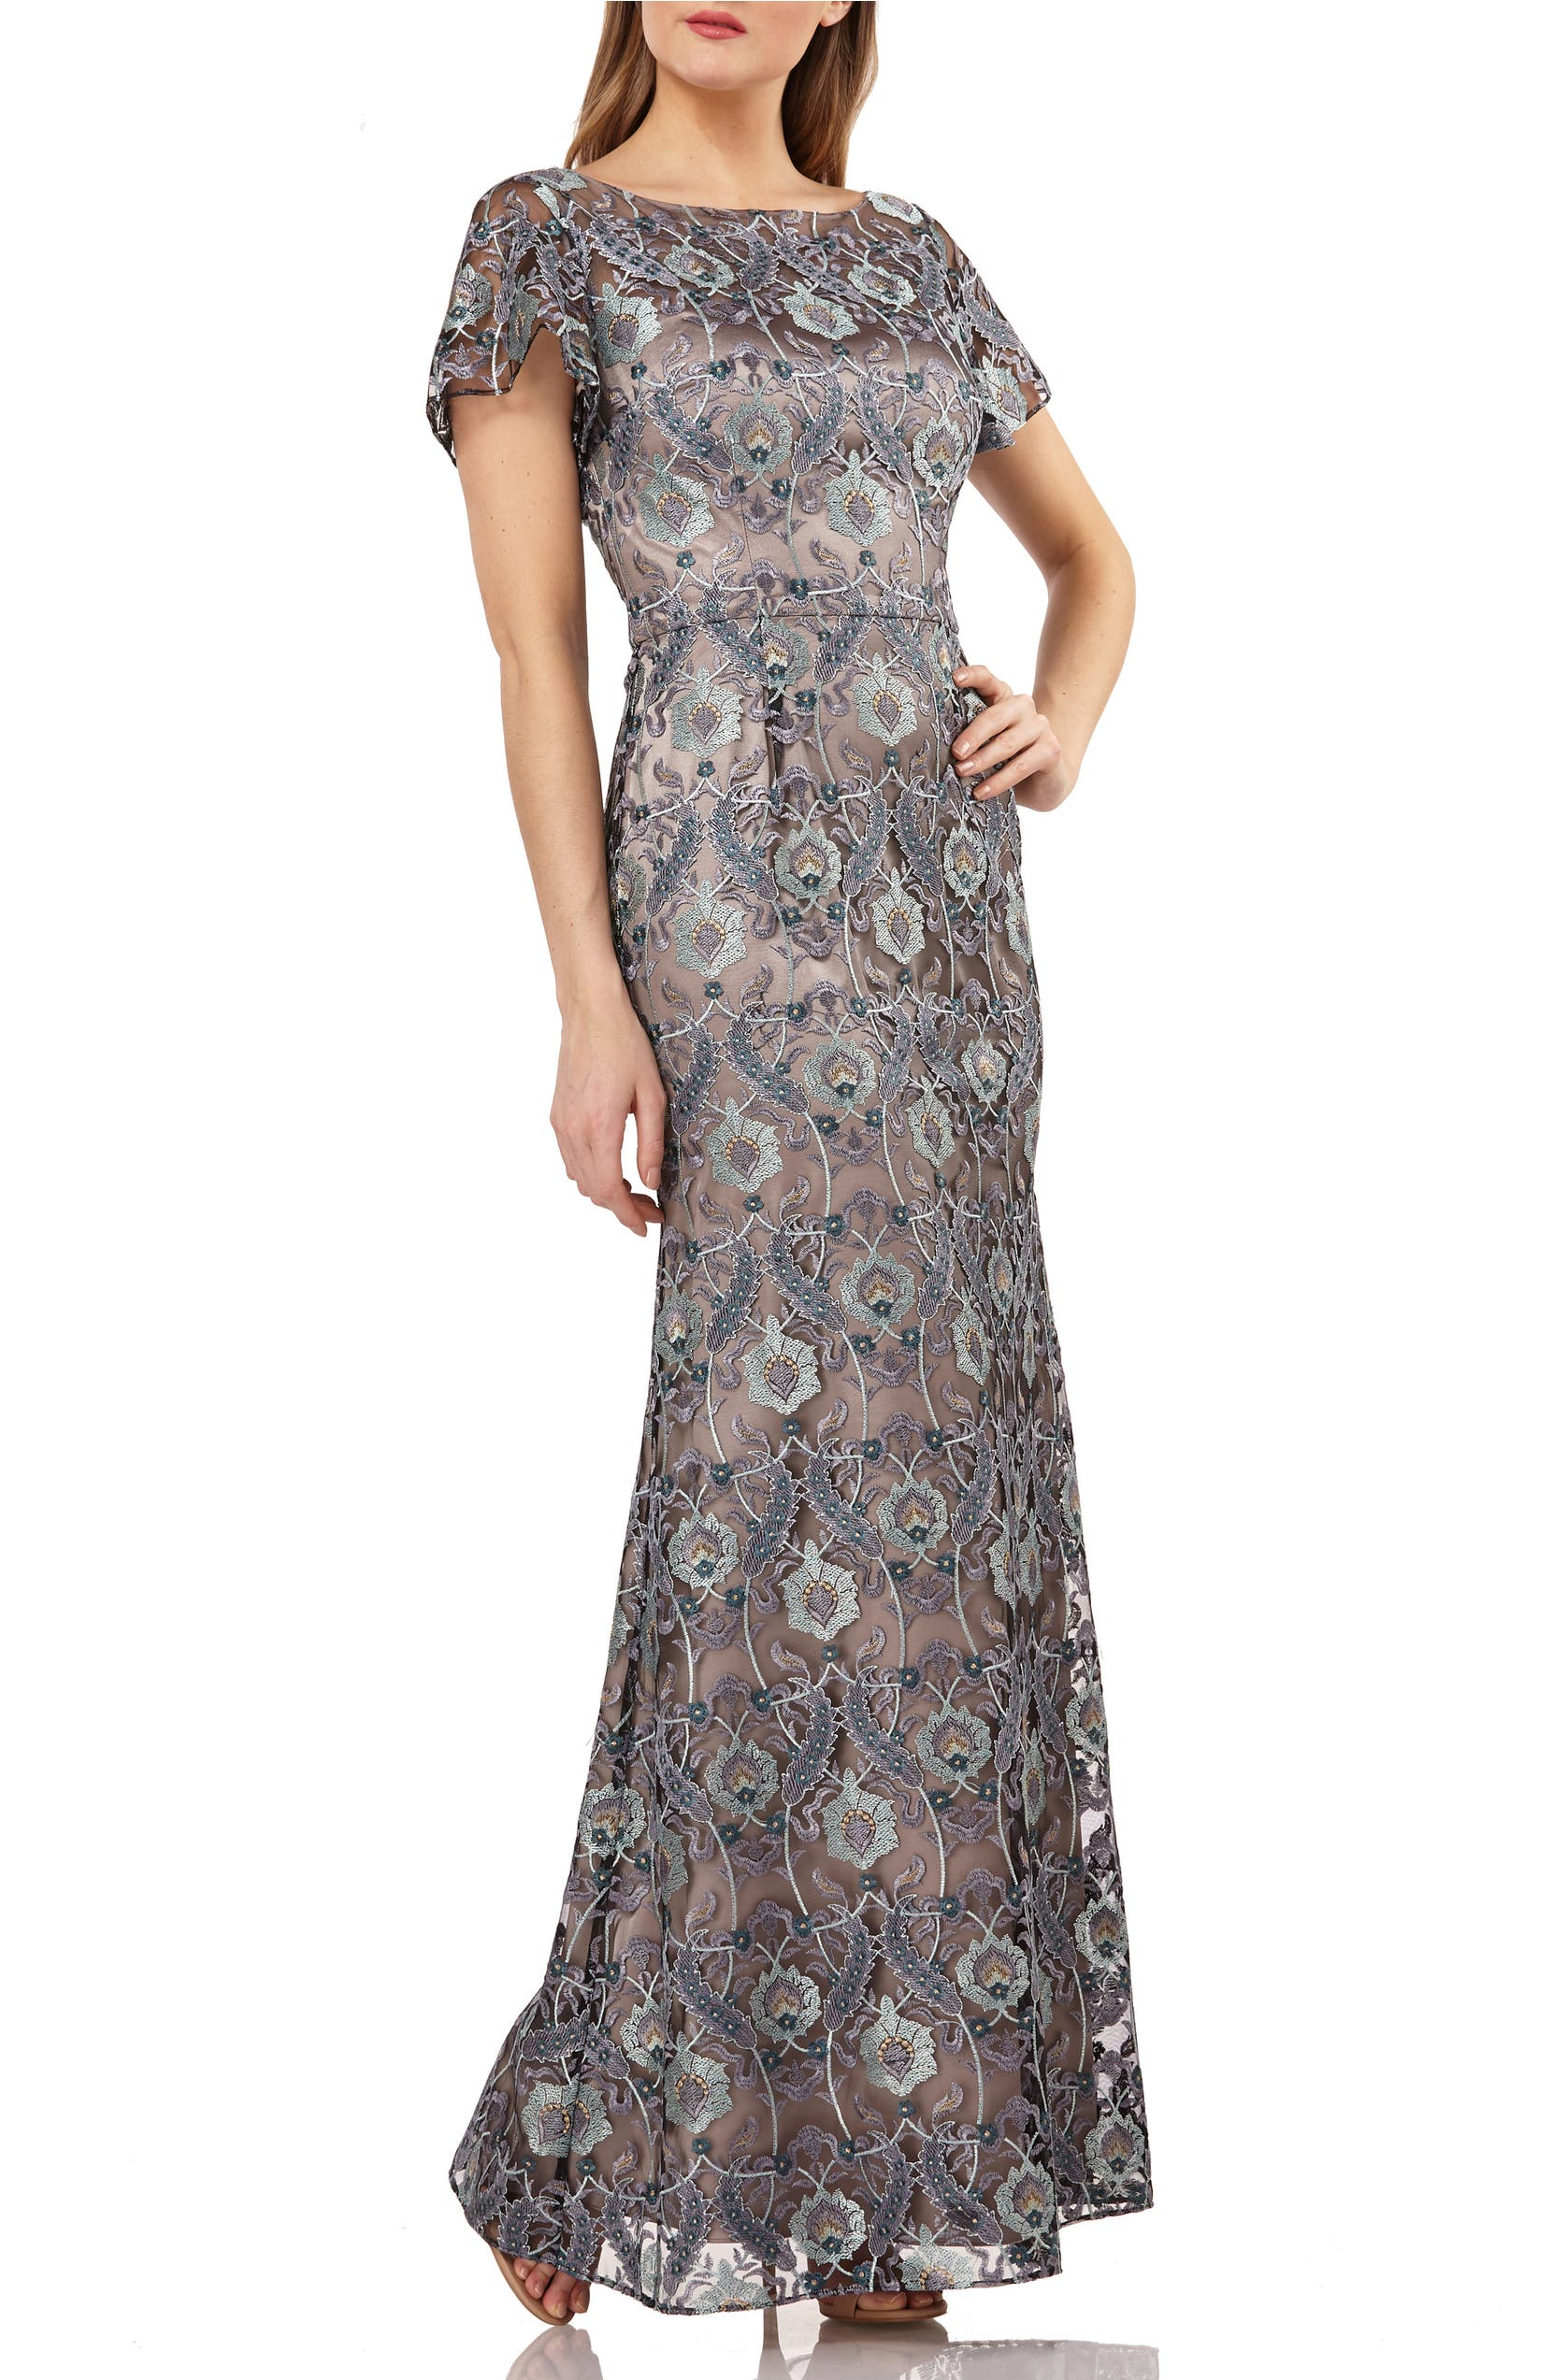 ac5b0d54d47f5 JS Collection Embroidered Overlay Illusion Lace Evening Dress ...